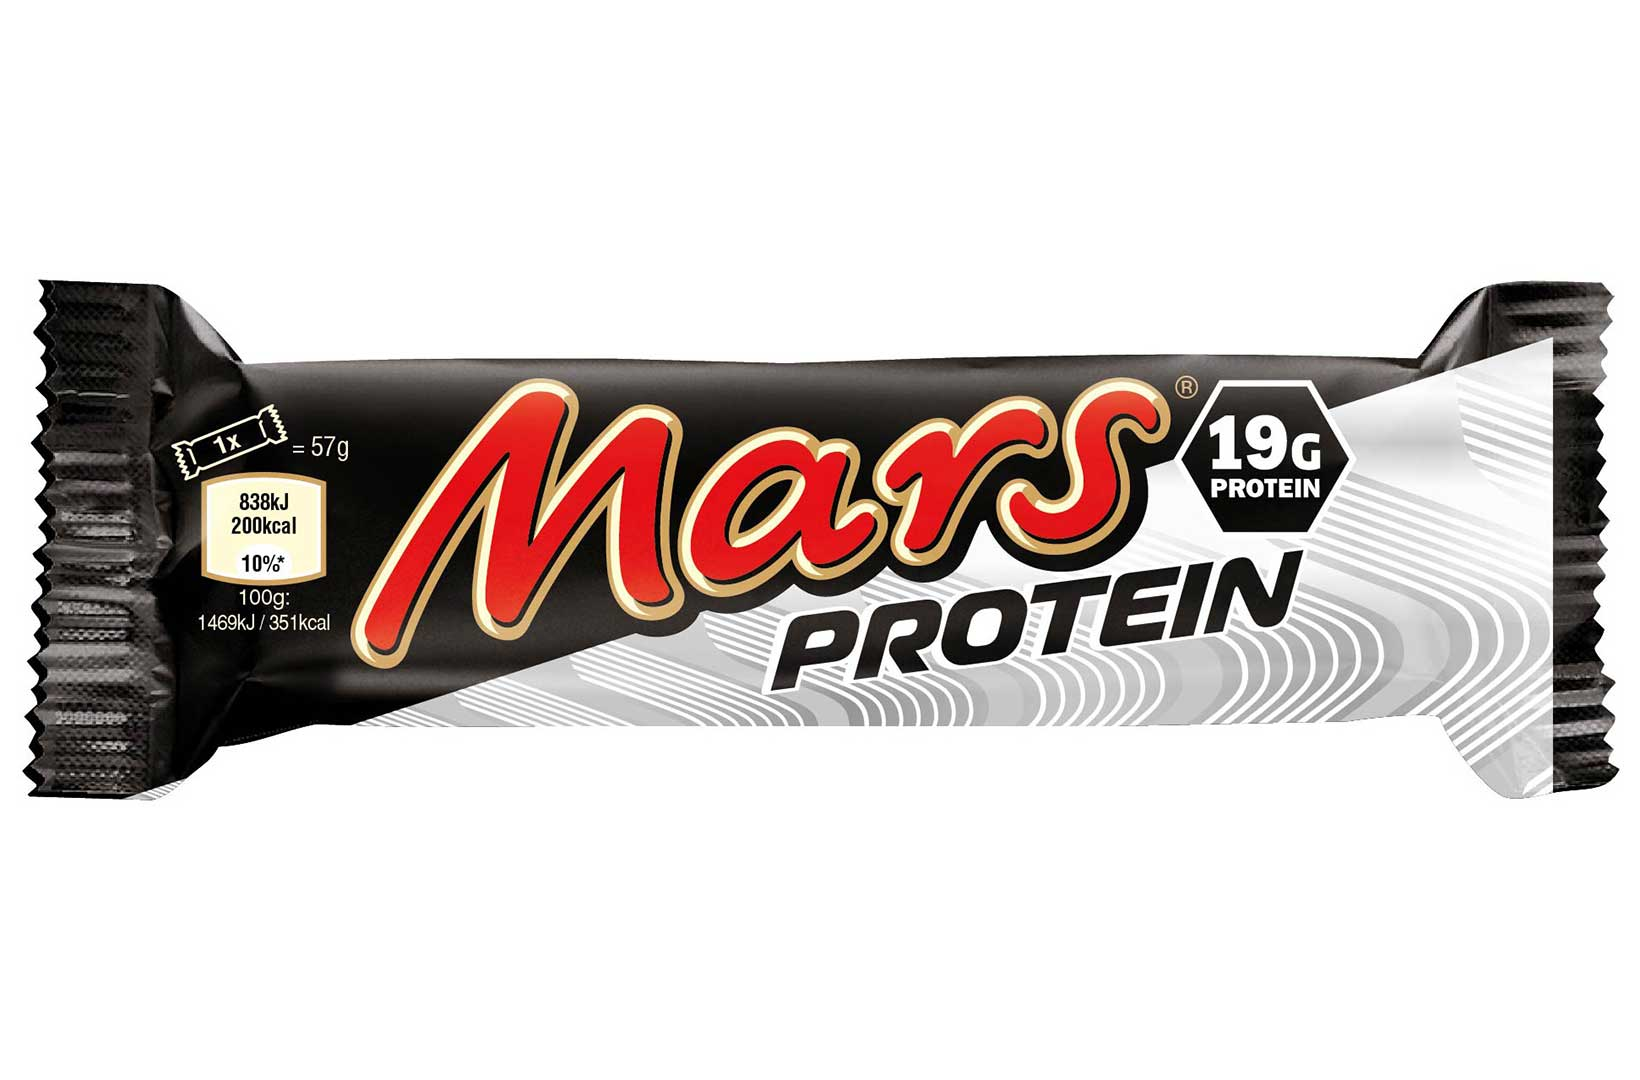 Mars Protein Bar Review